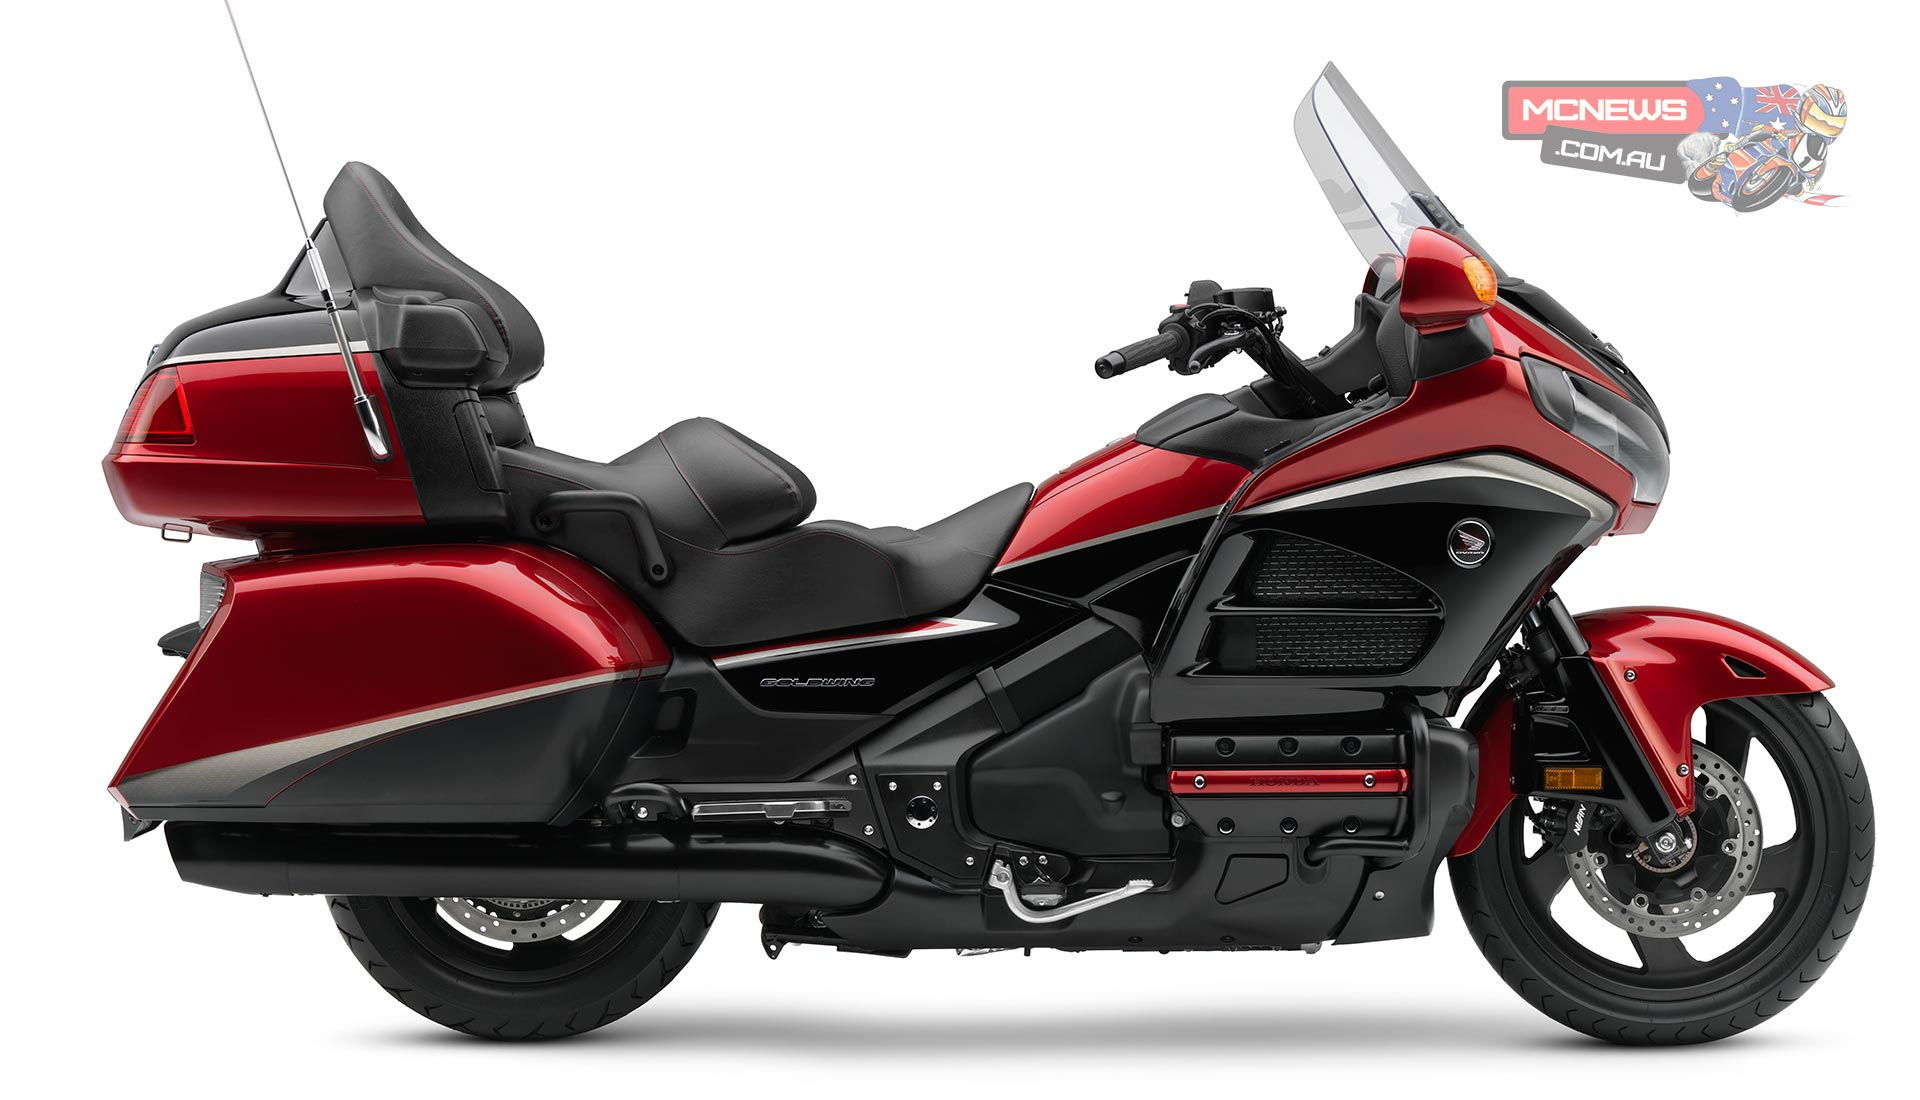 Honda GL 1800 Gold Wing 2013 images #83177